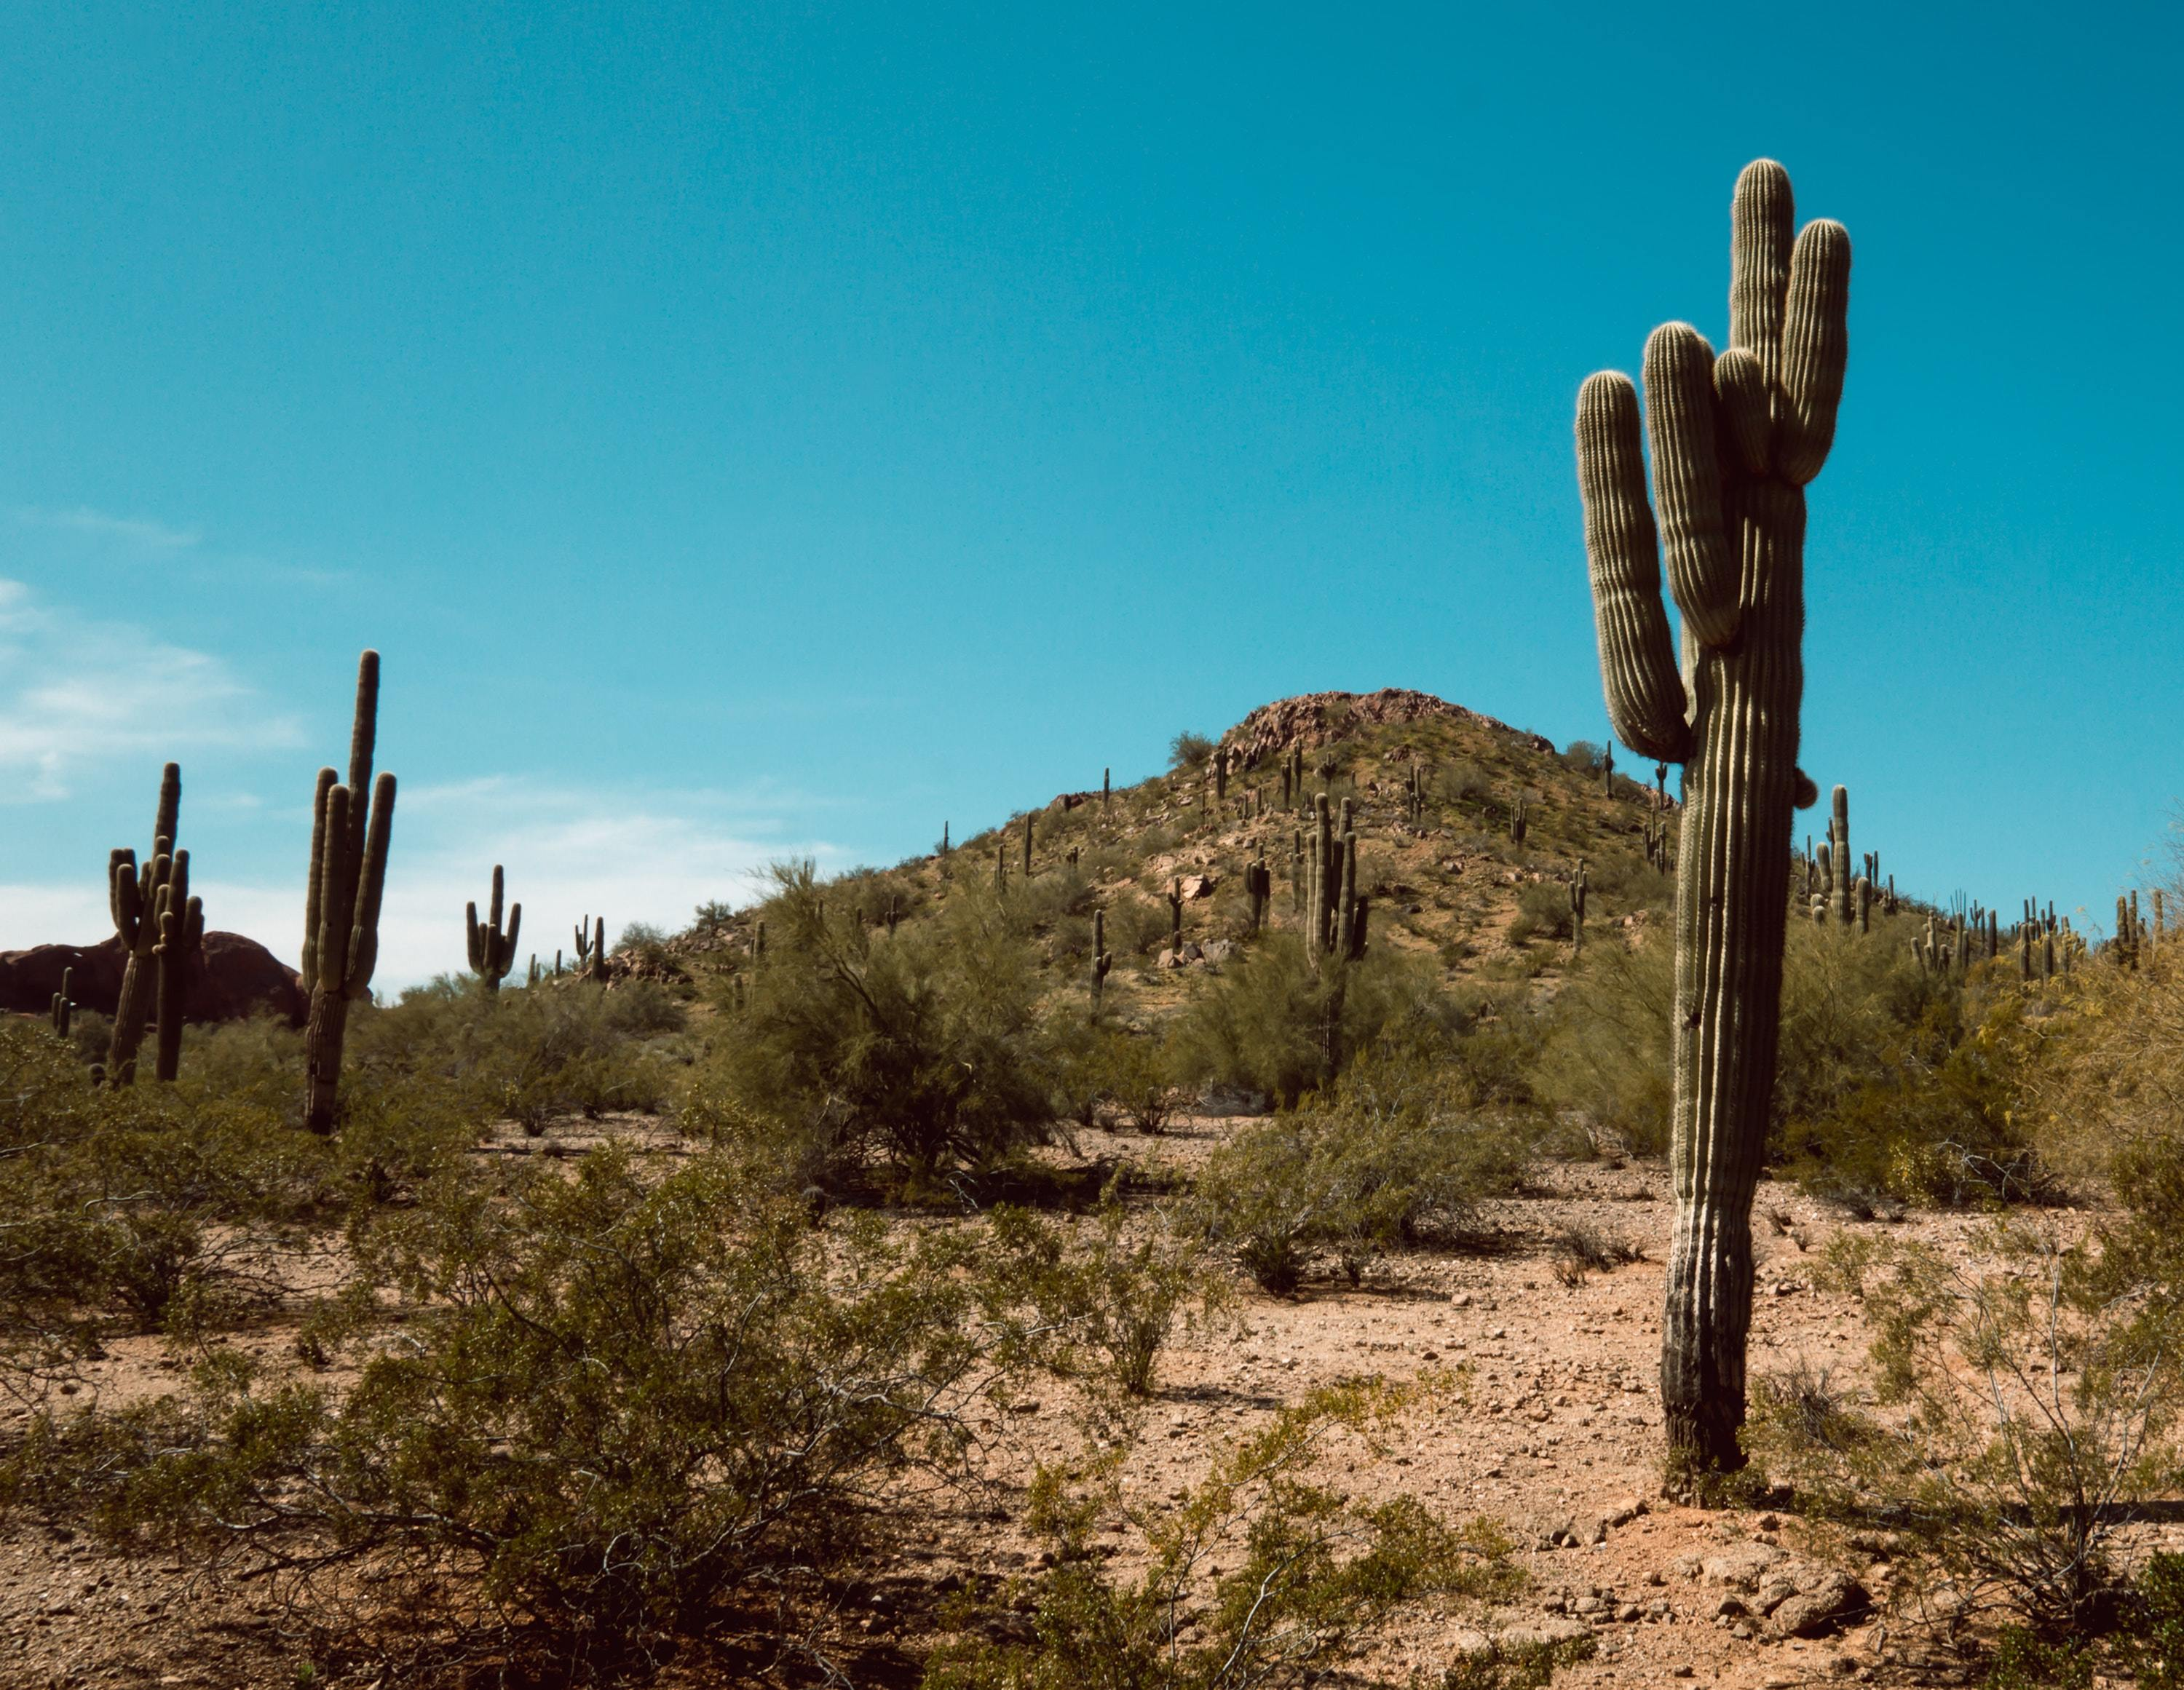 Reduce Your Screen Time and Disconnect | Parks in Gilbert, AZ-image